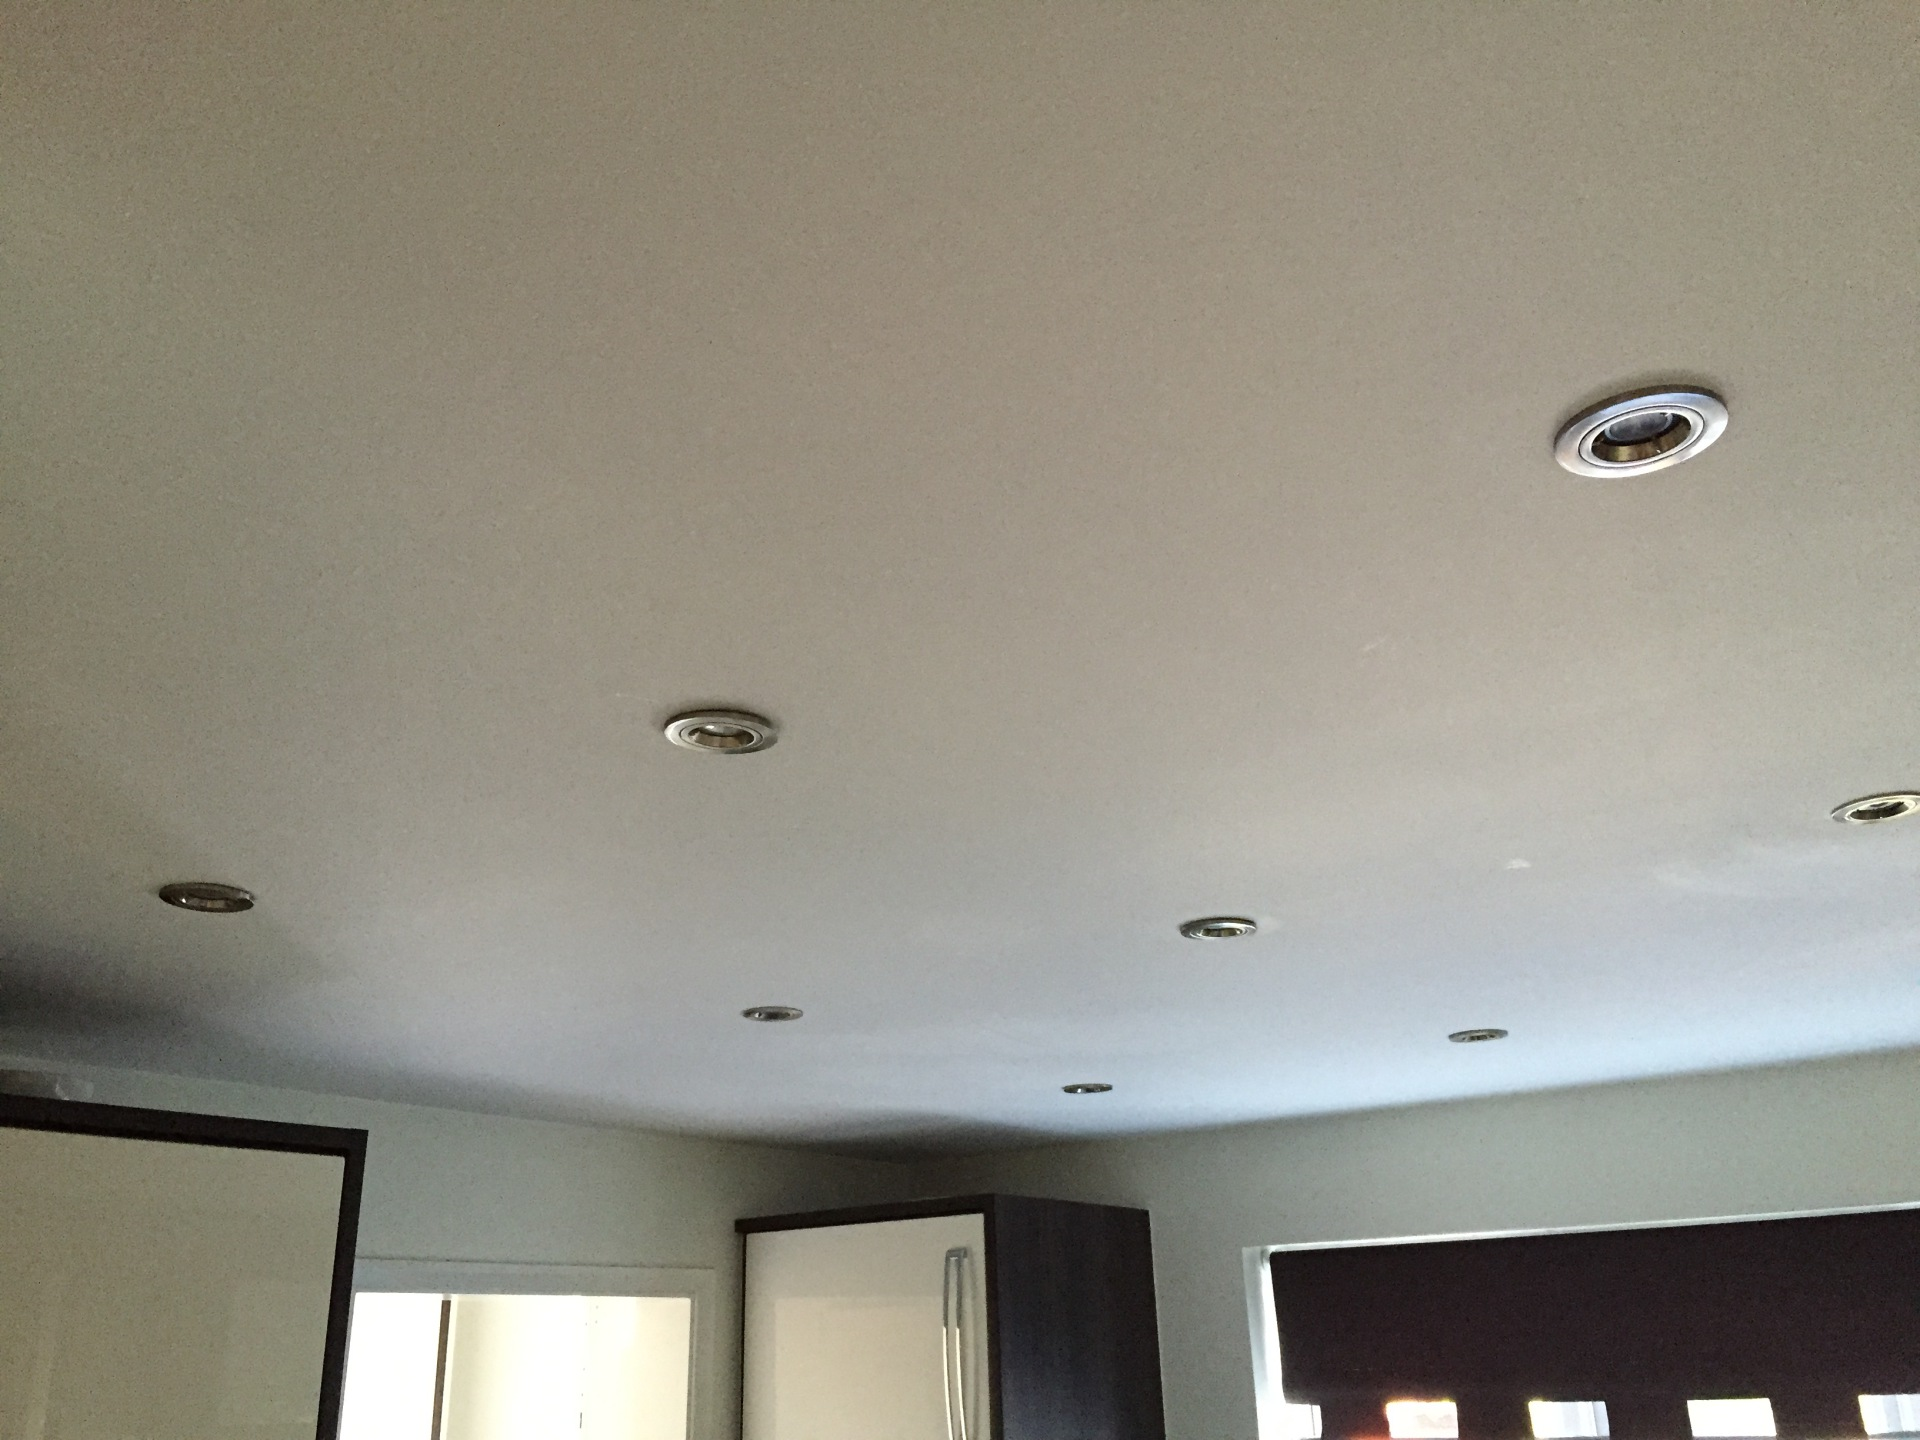 Brushed Chrome Fire Rated Down-Lighters - Warm White LED Lamps